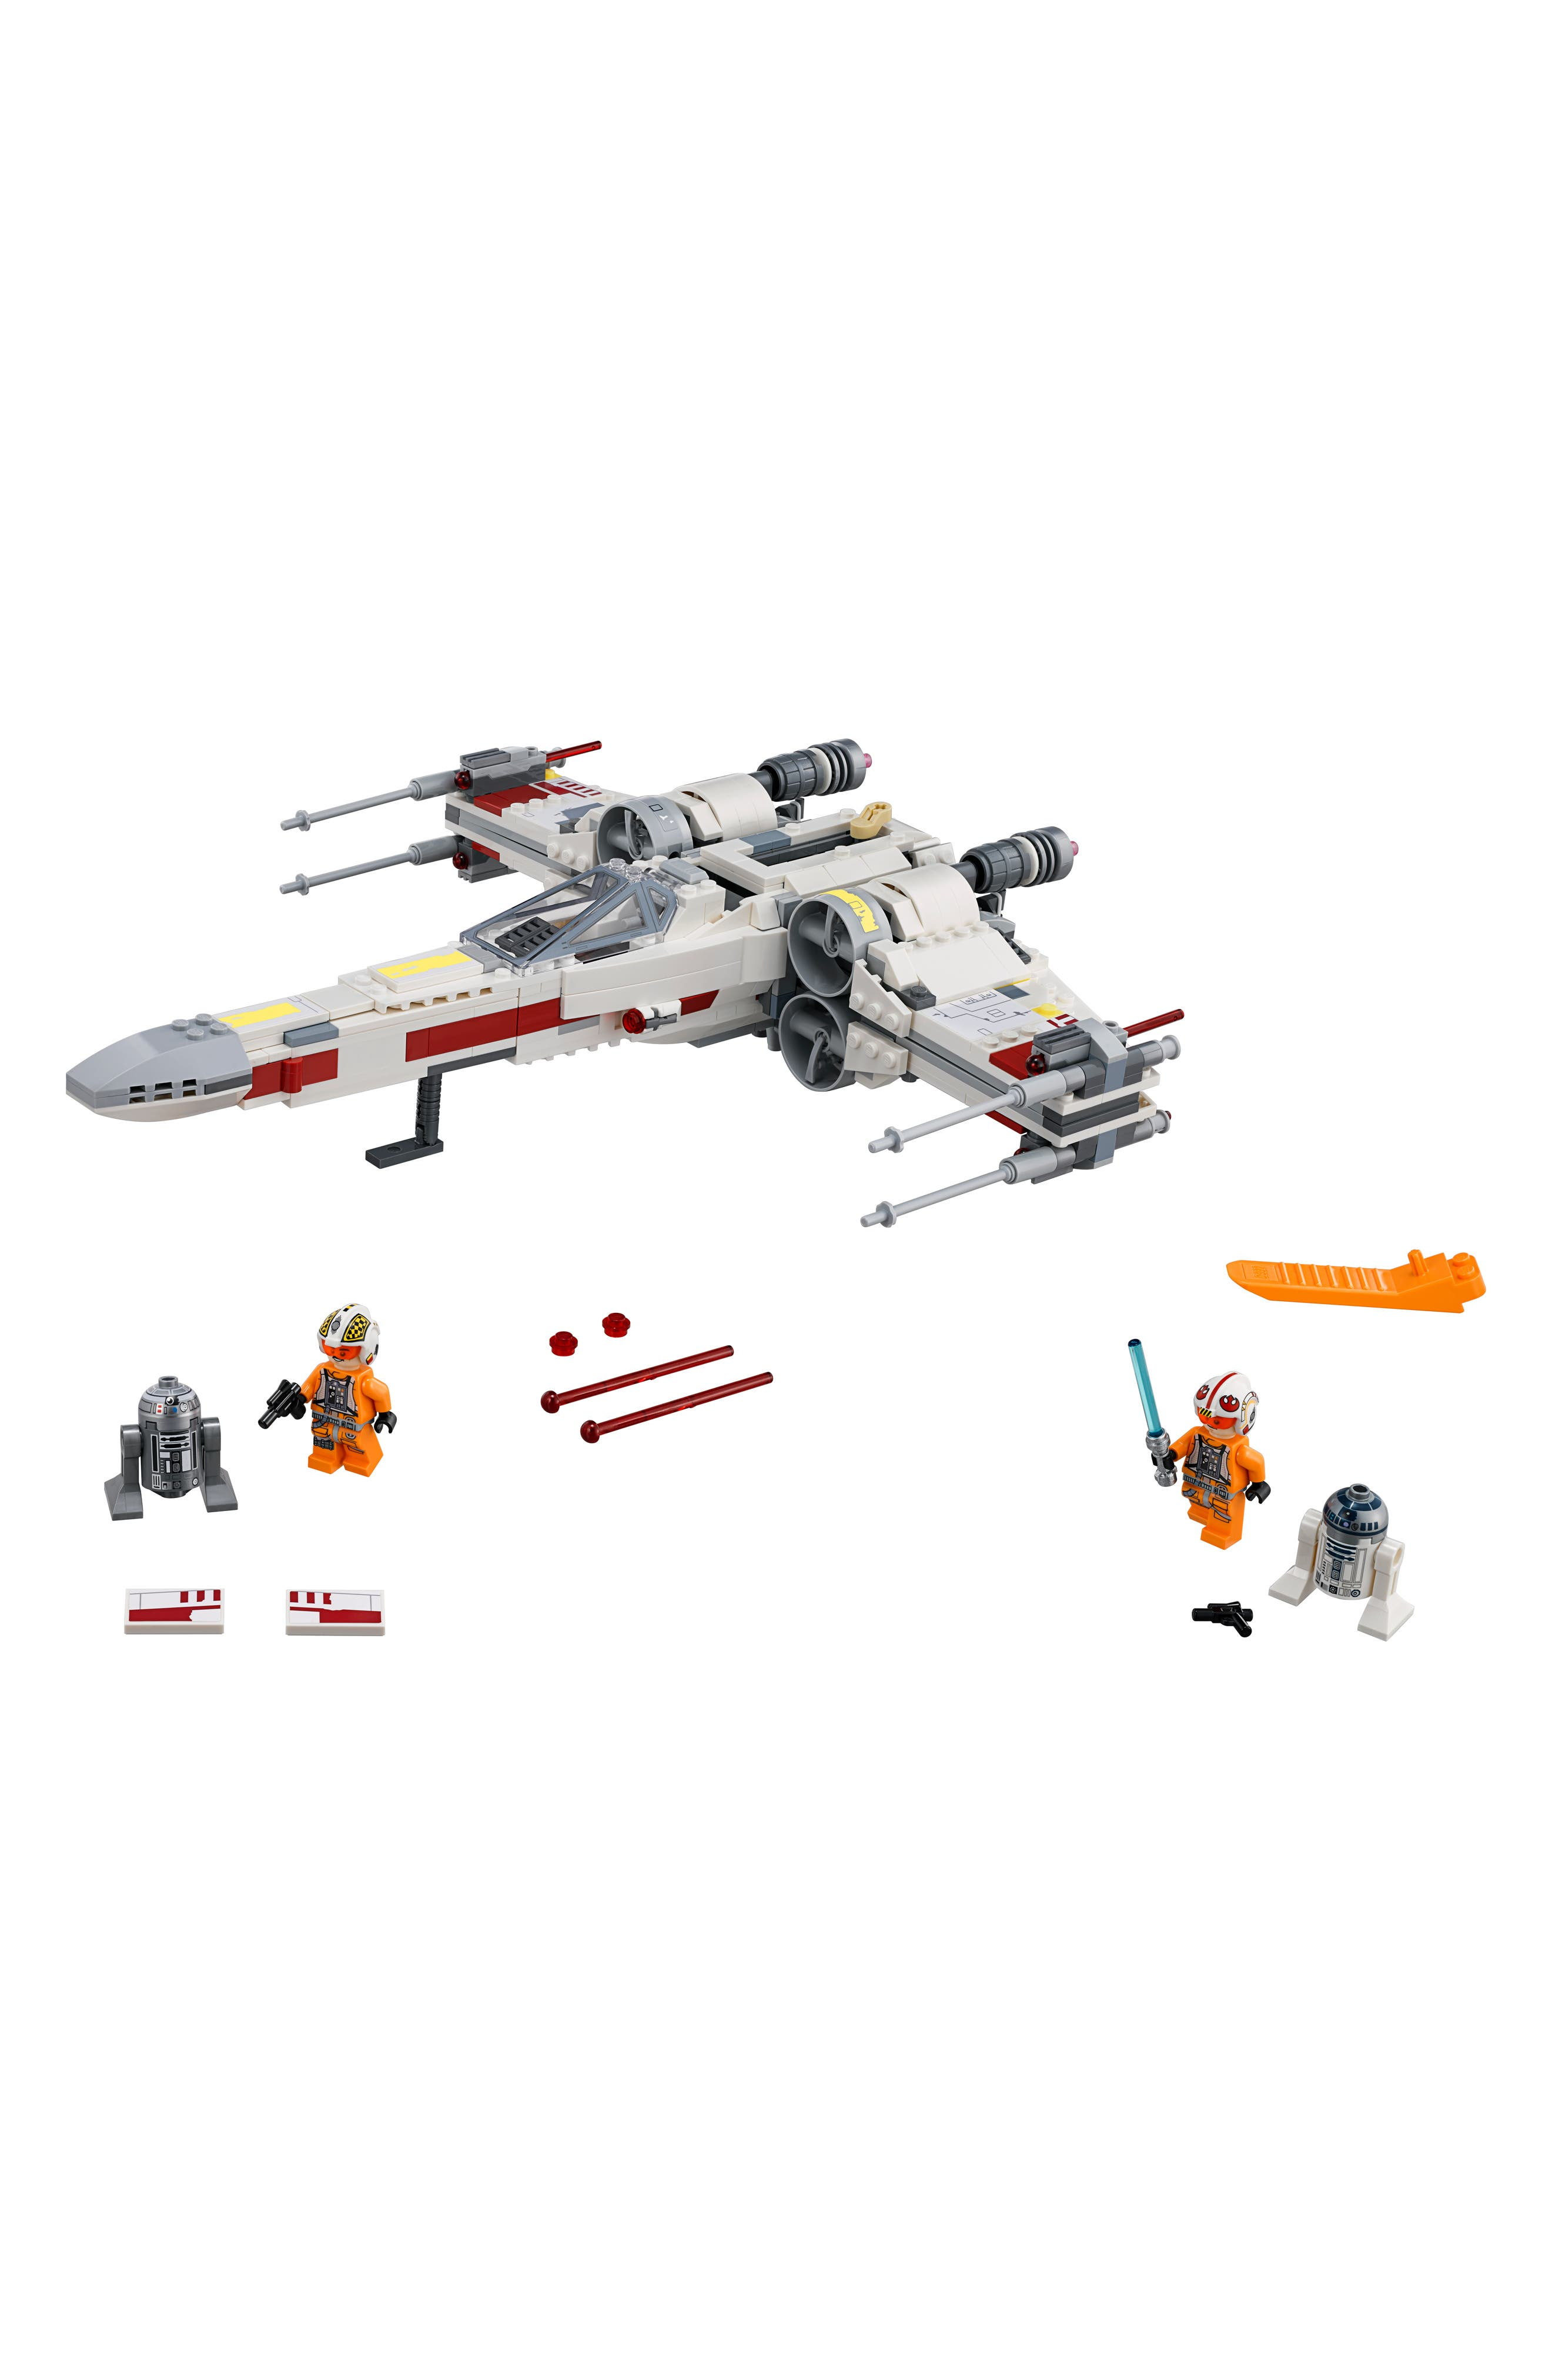 LEGO<SUP>®</SUP>,                             Star Wars<sup>®</sup> X-Wing Starfighter - 75218,                             Main thumbnail 1, color,                             960